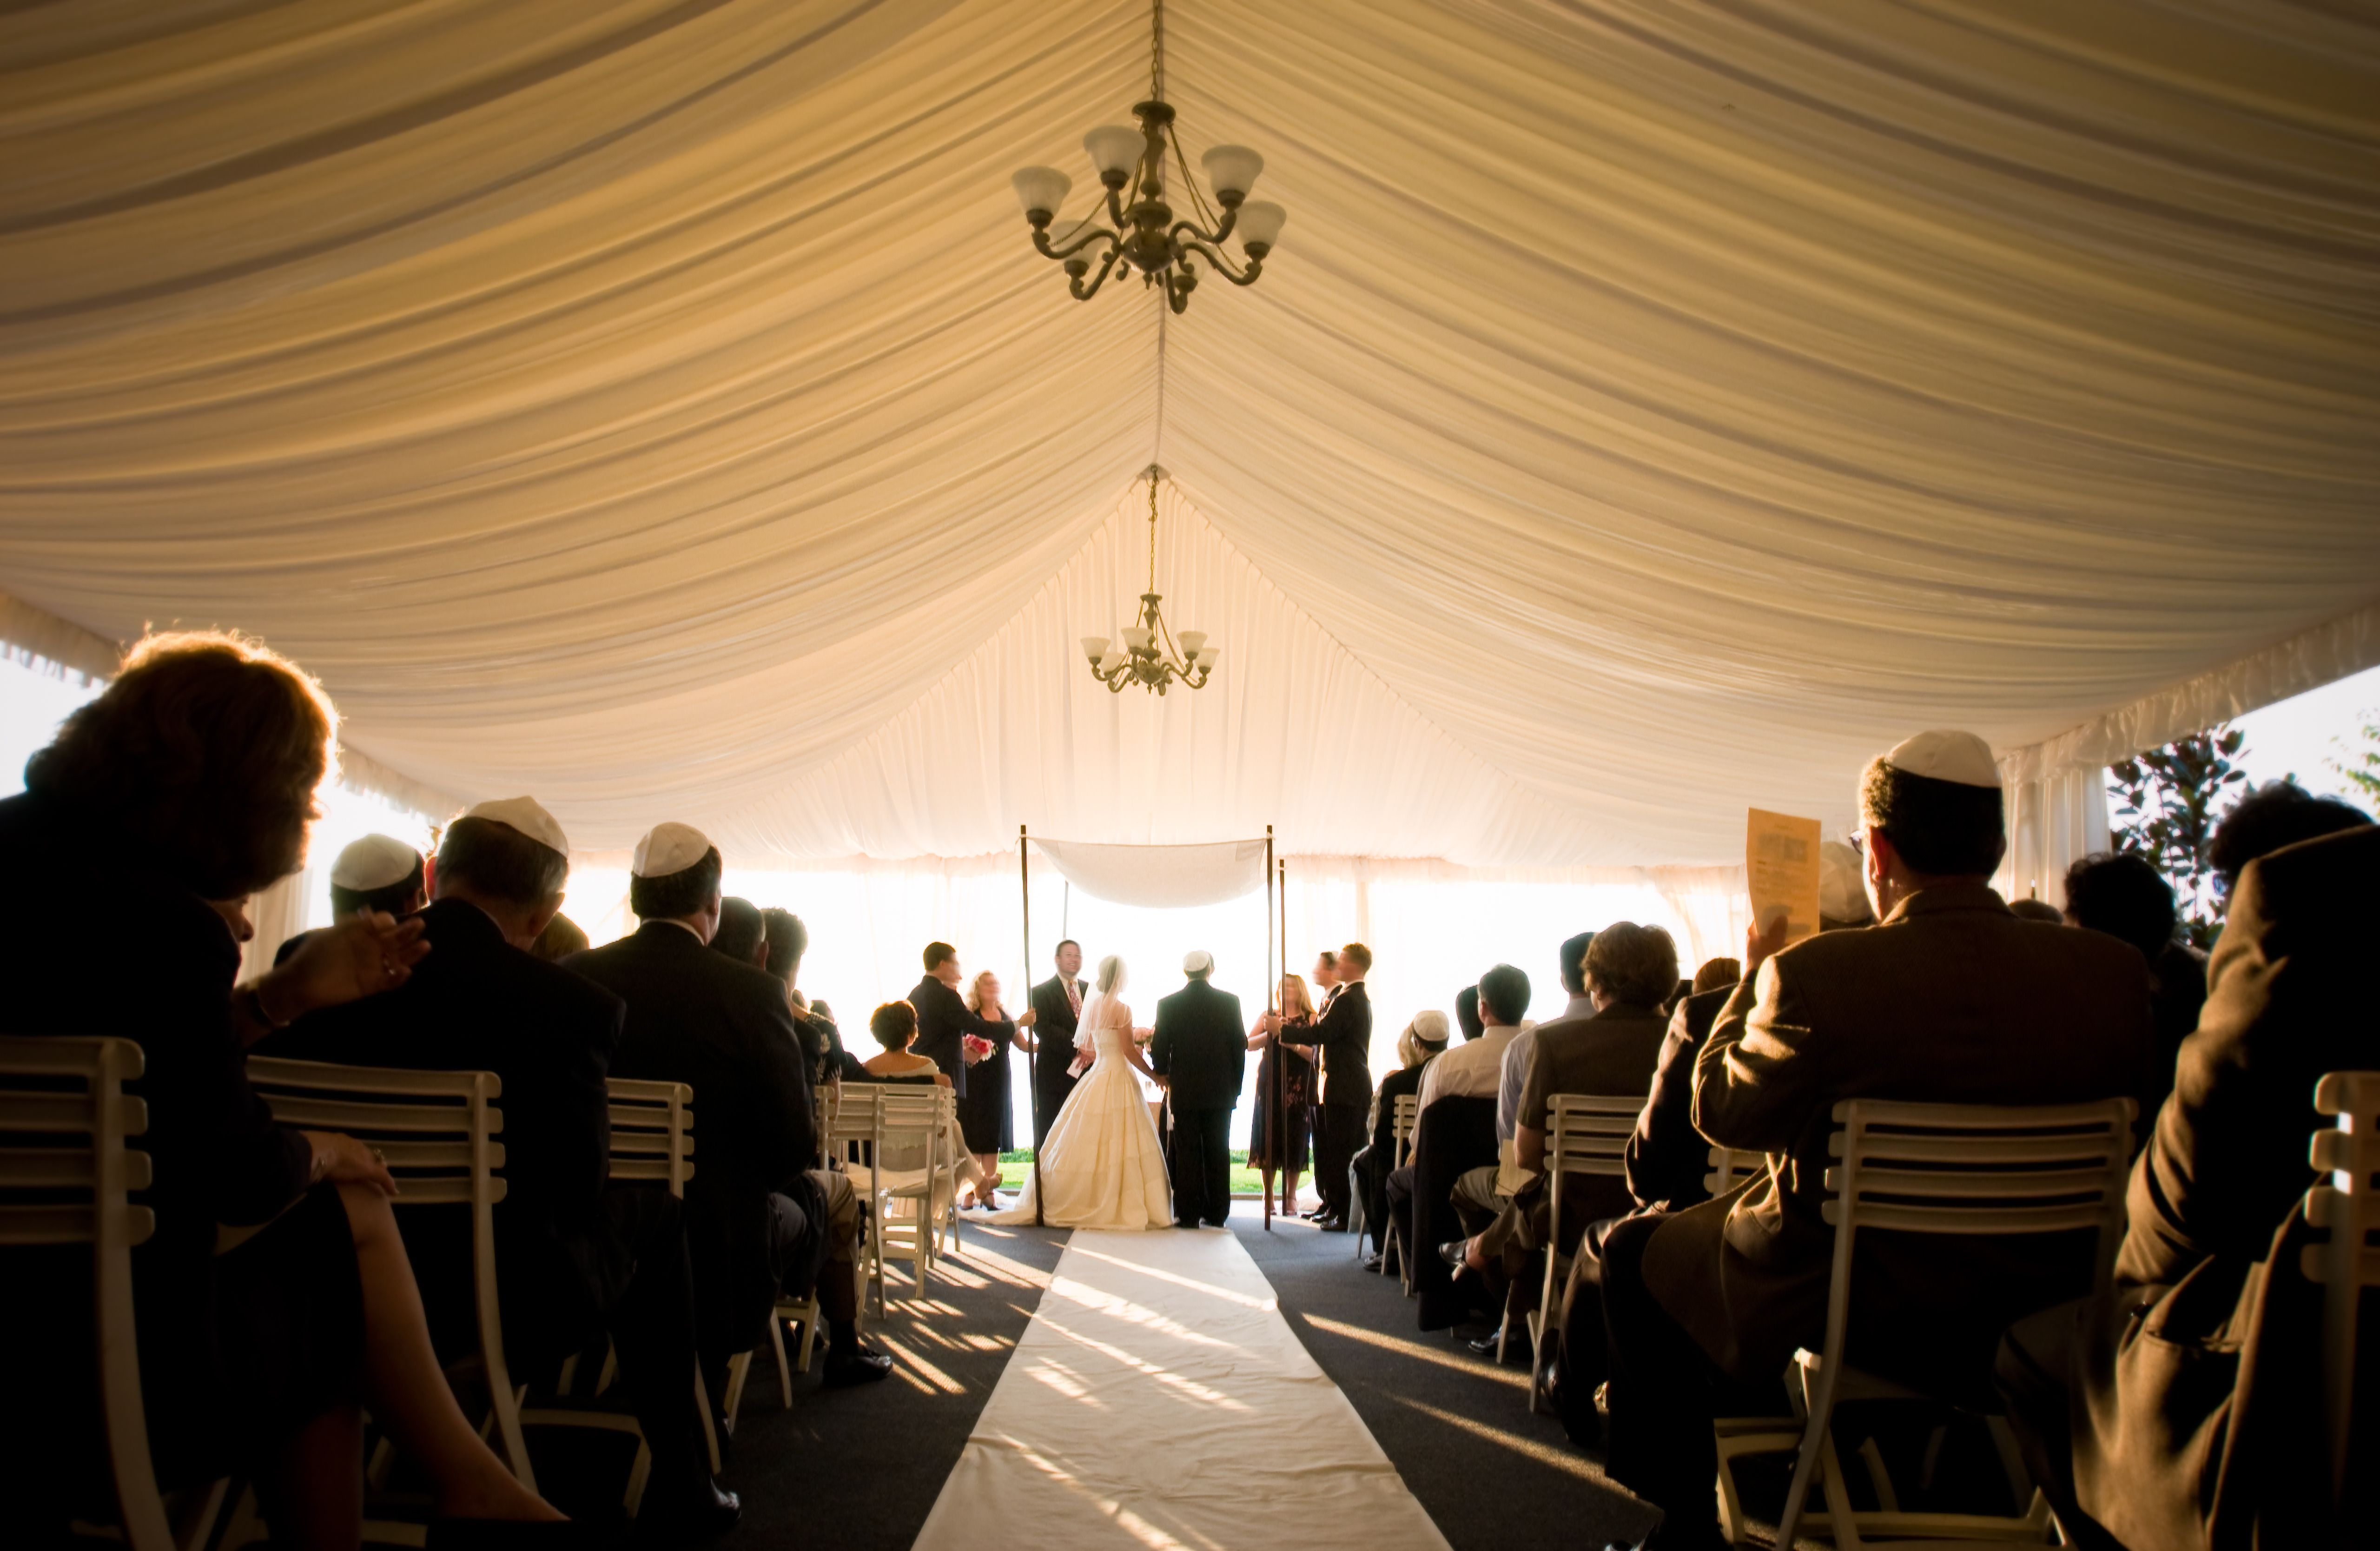 Learn About The Jewish View Of Marriage And Weddings